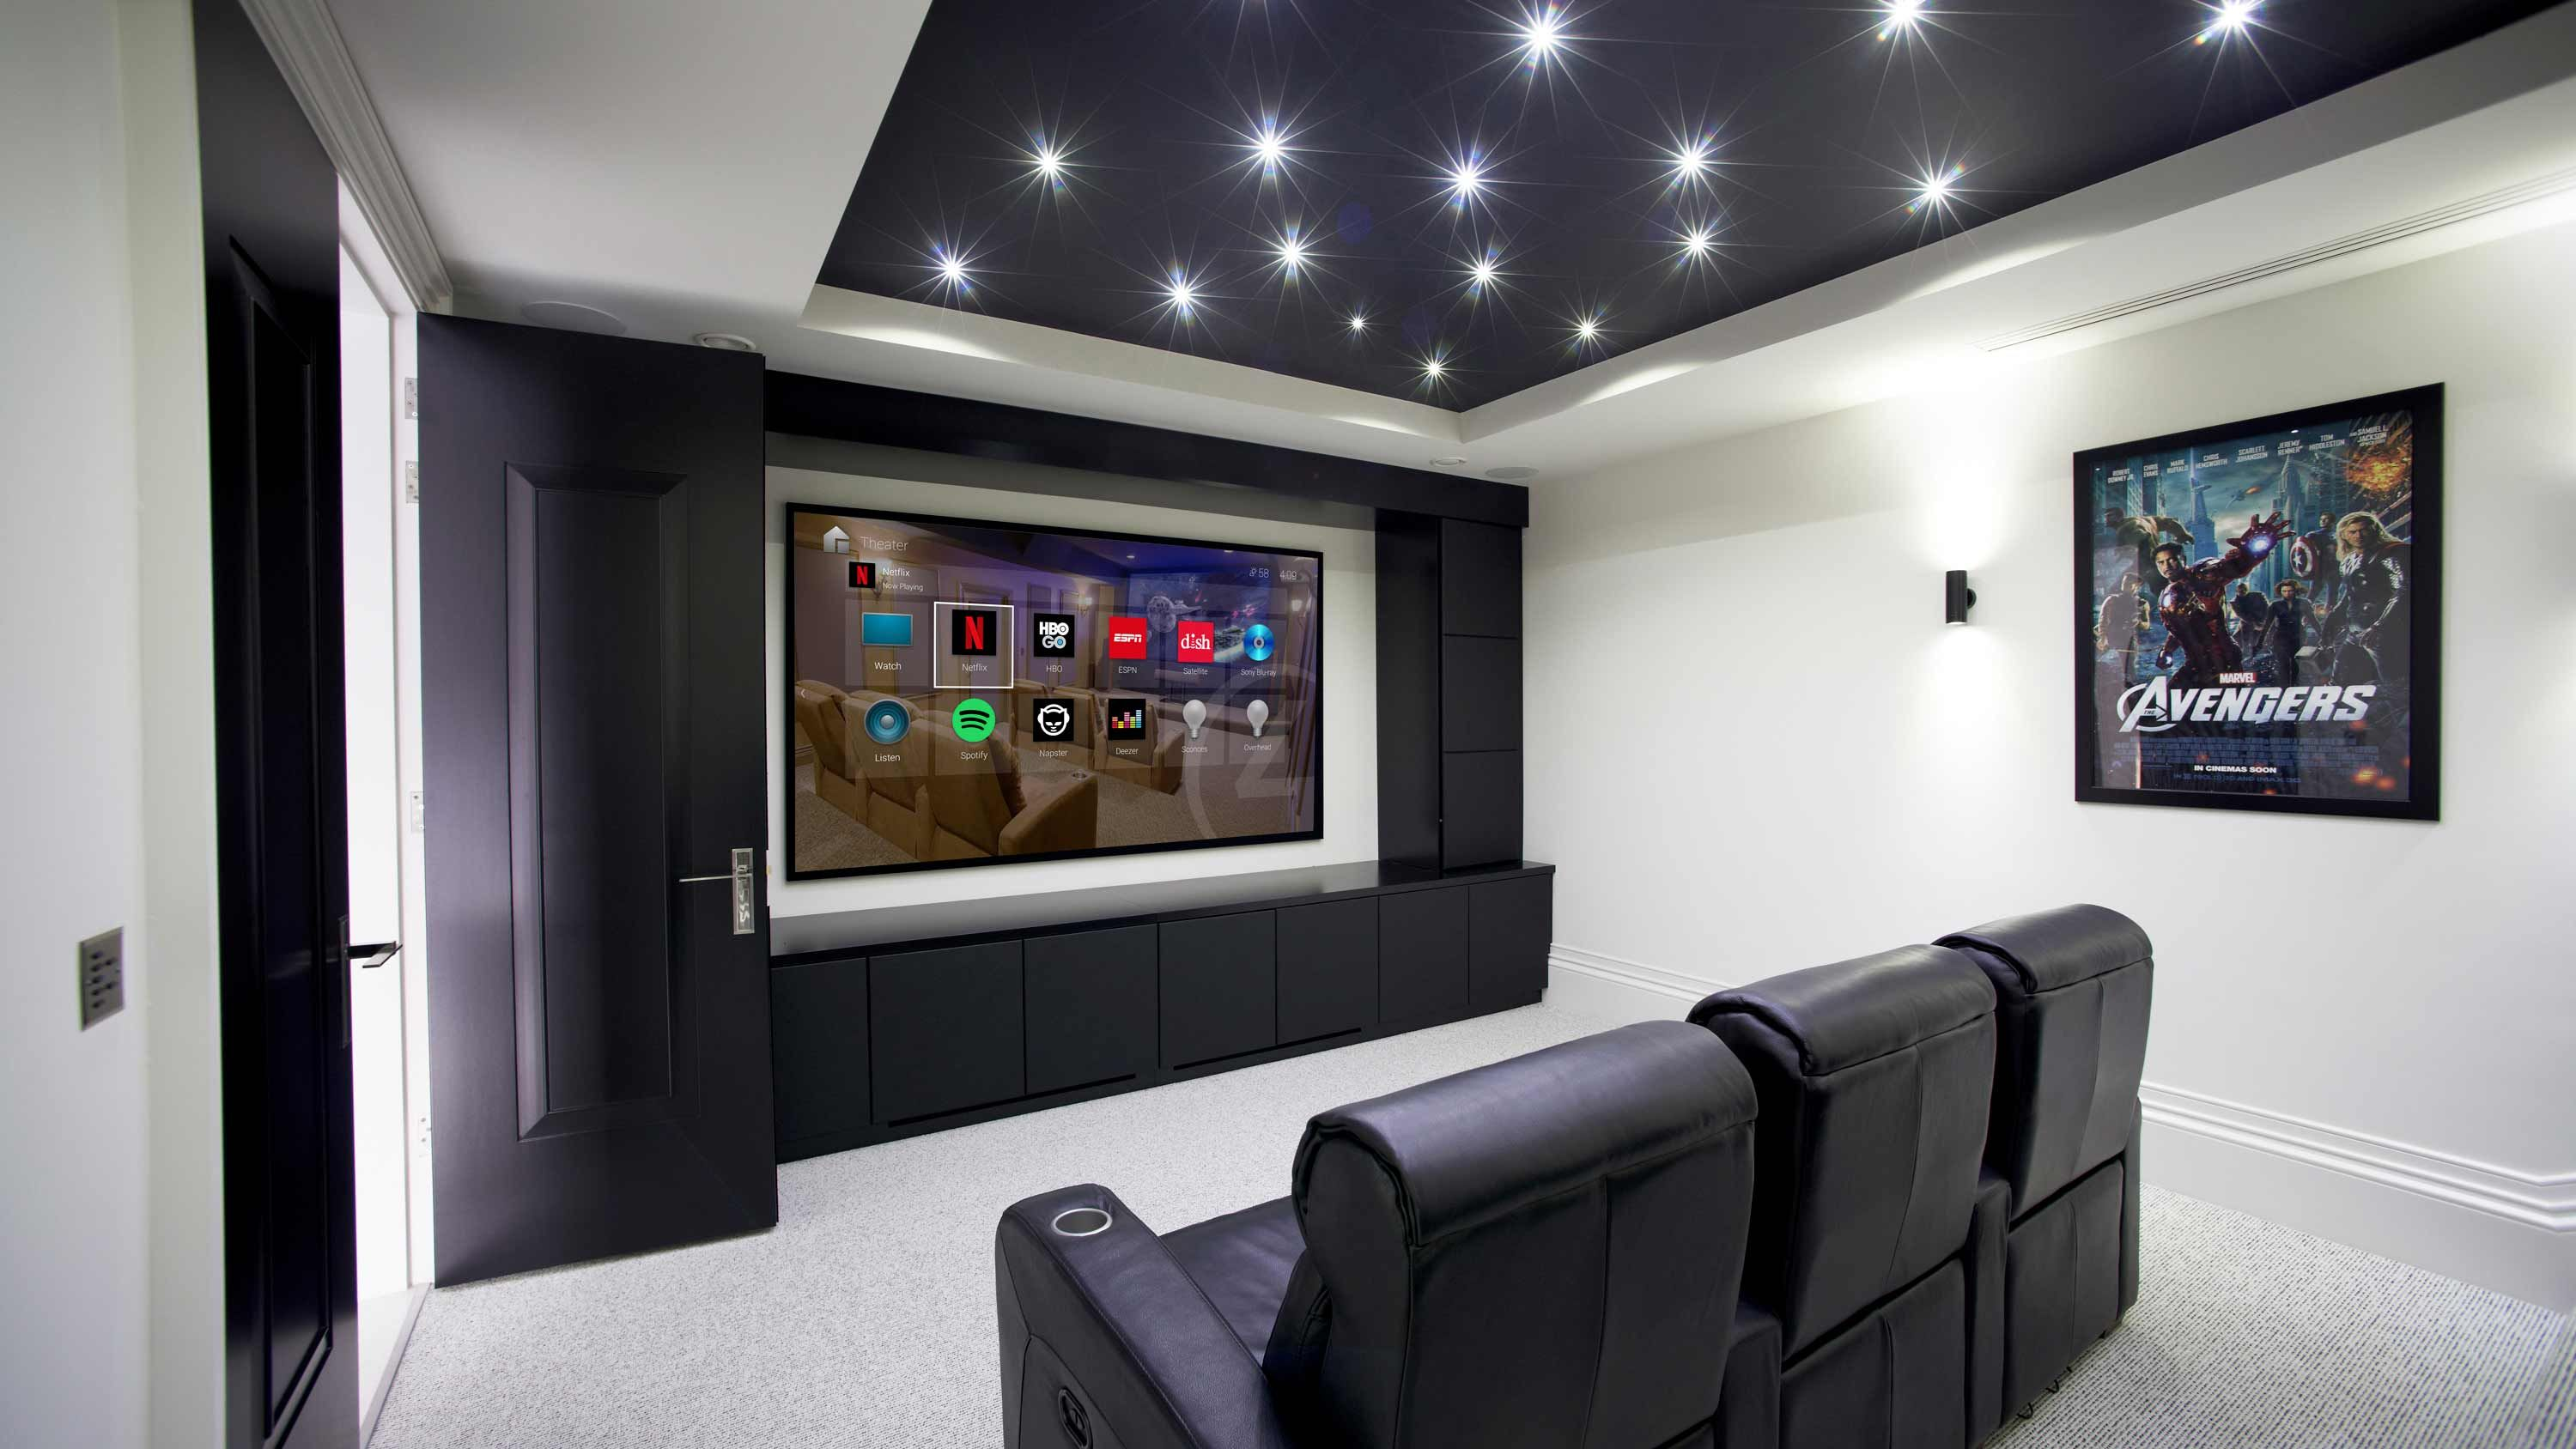 Control4 Dealer Austin, TX, home control, indoor automation, home automation, dedicated home theater, home theater,, smart home control4